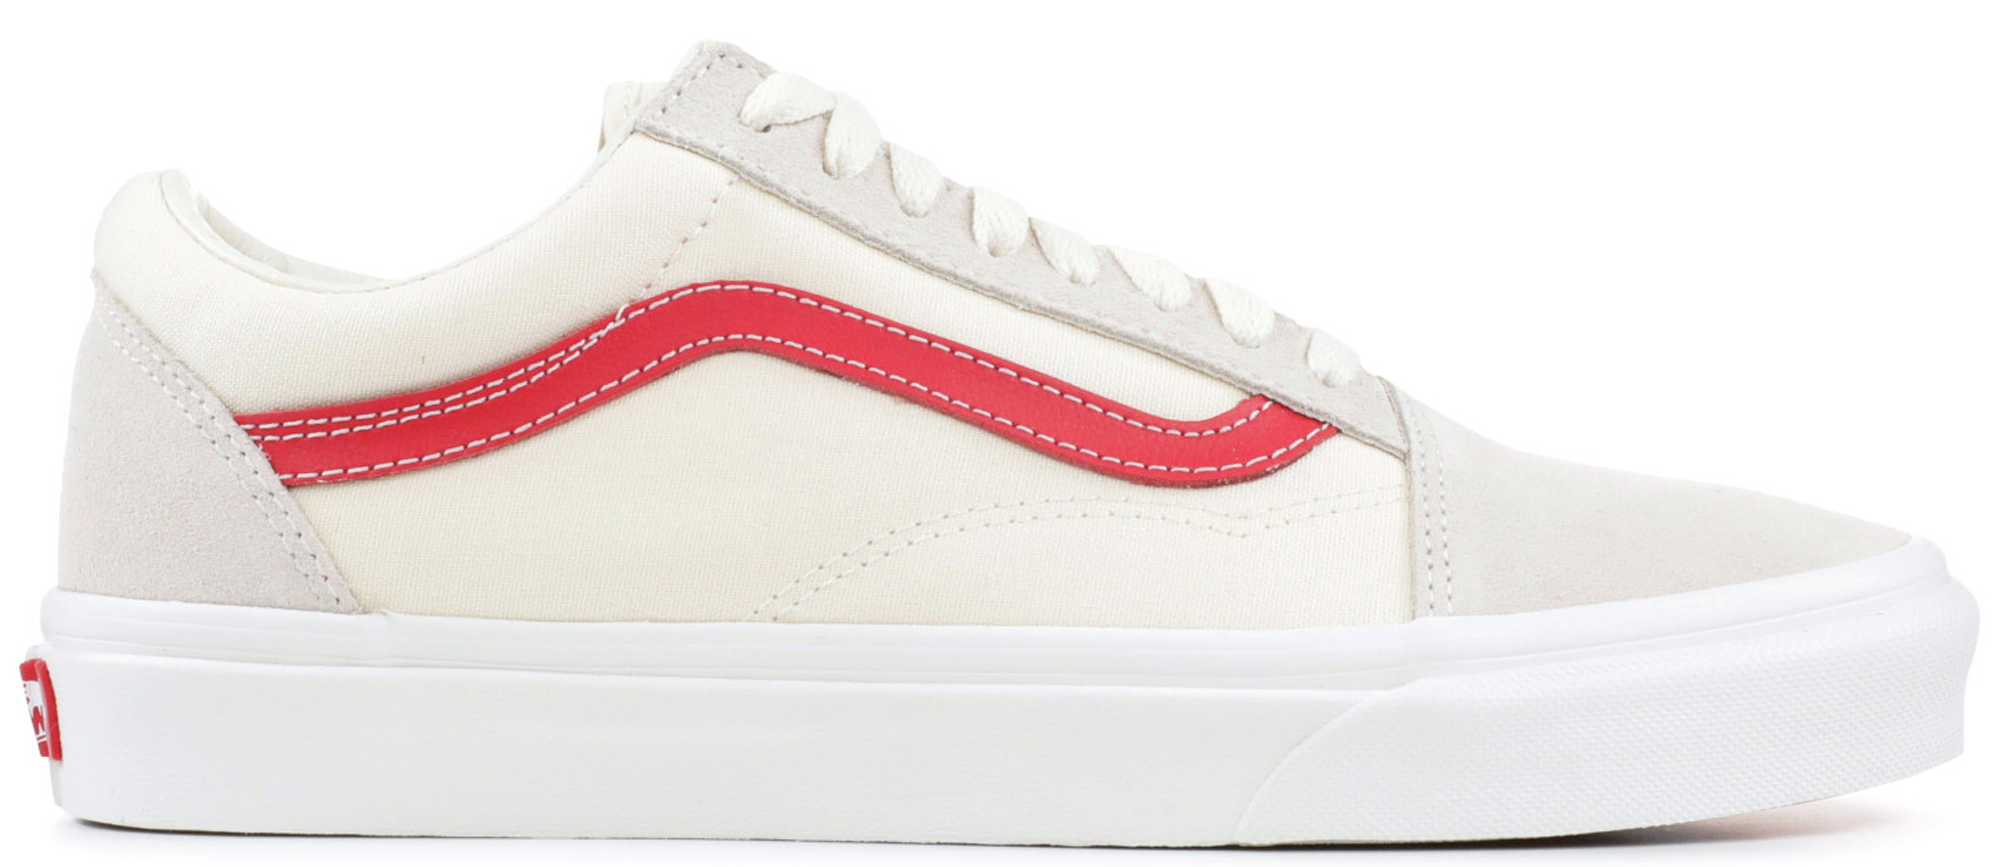 cd094a2c0b00 Check out the Vans Old Skool Cream Red available on StockX